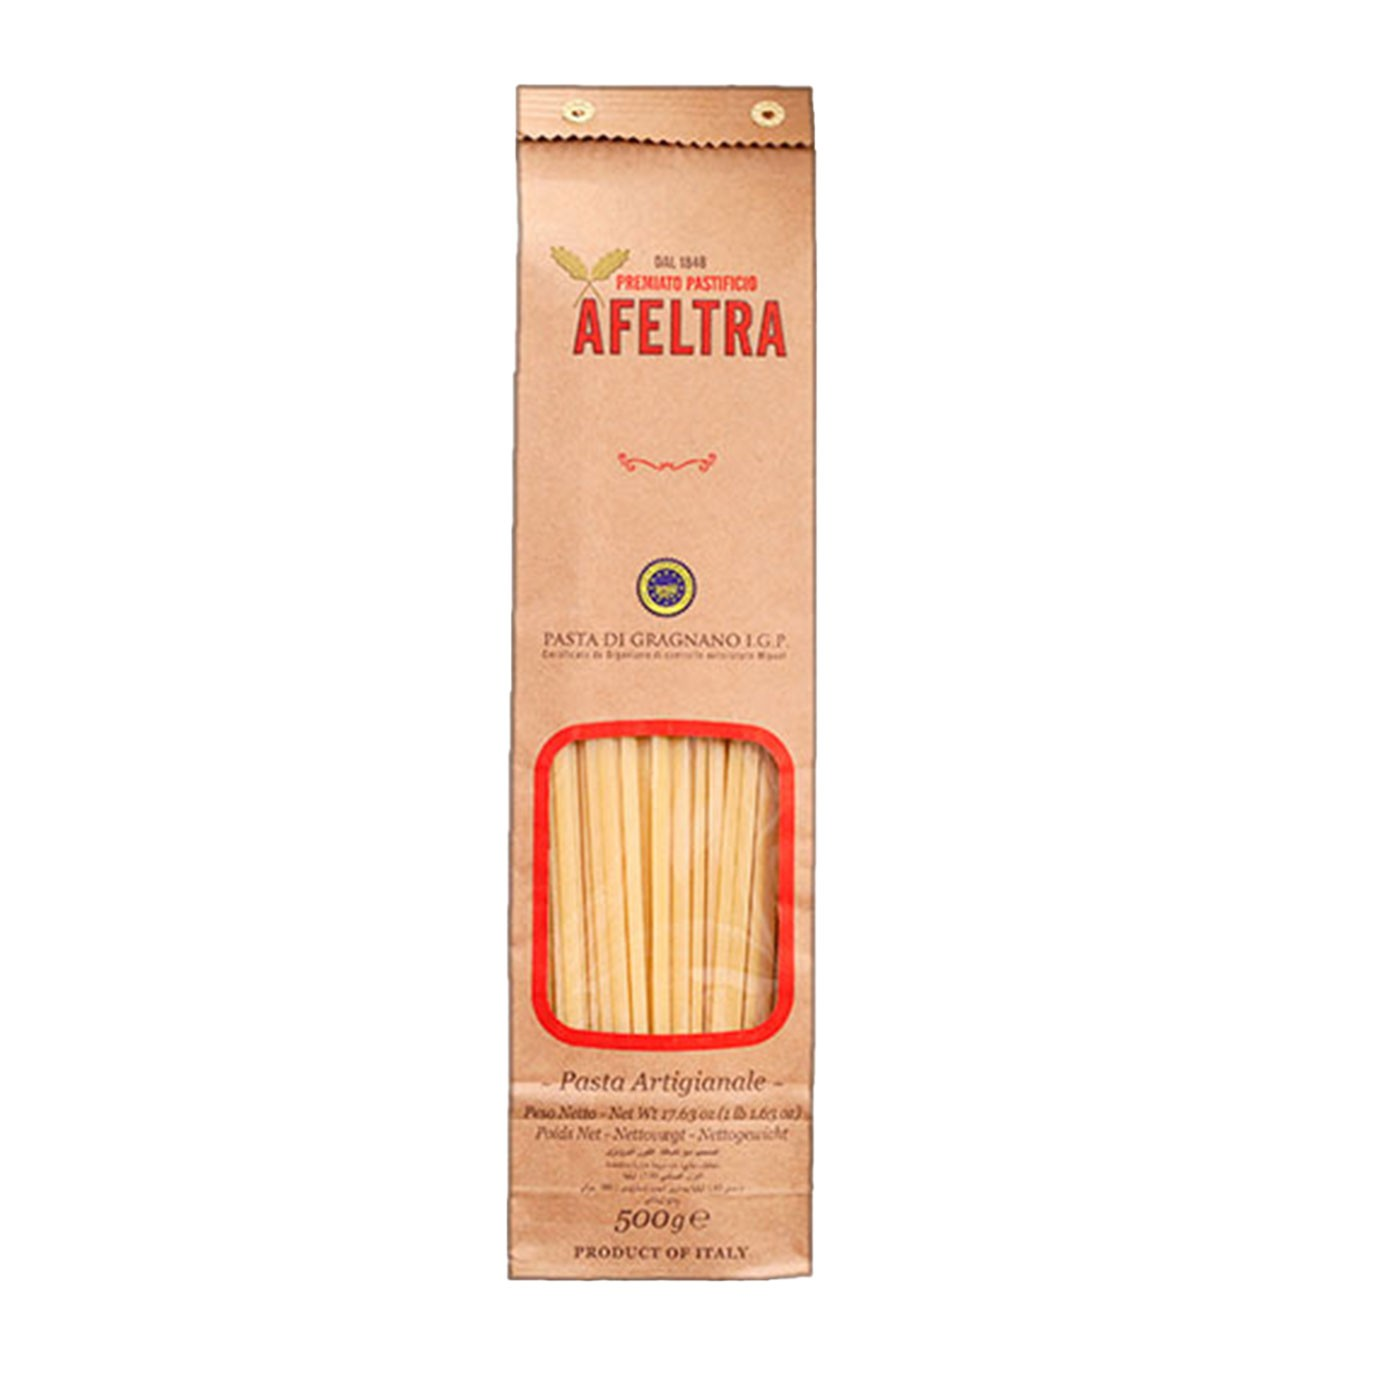 Linguine 17.6 oz - Afeltra